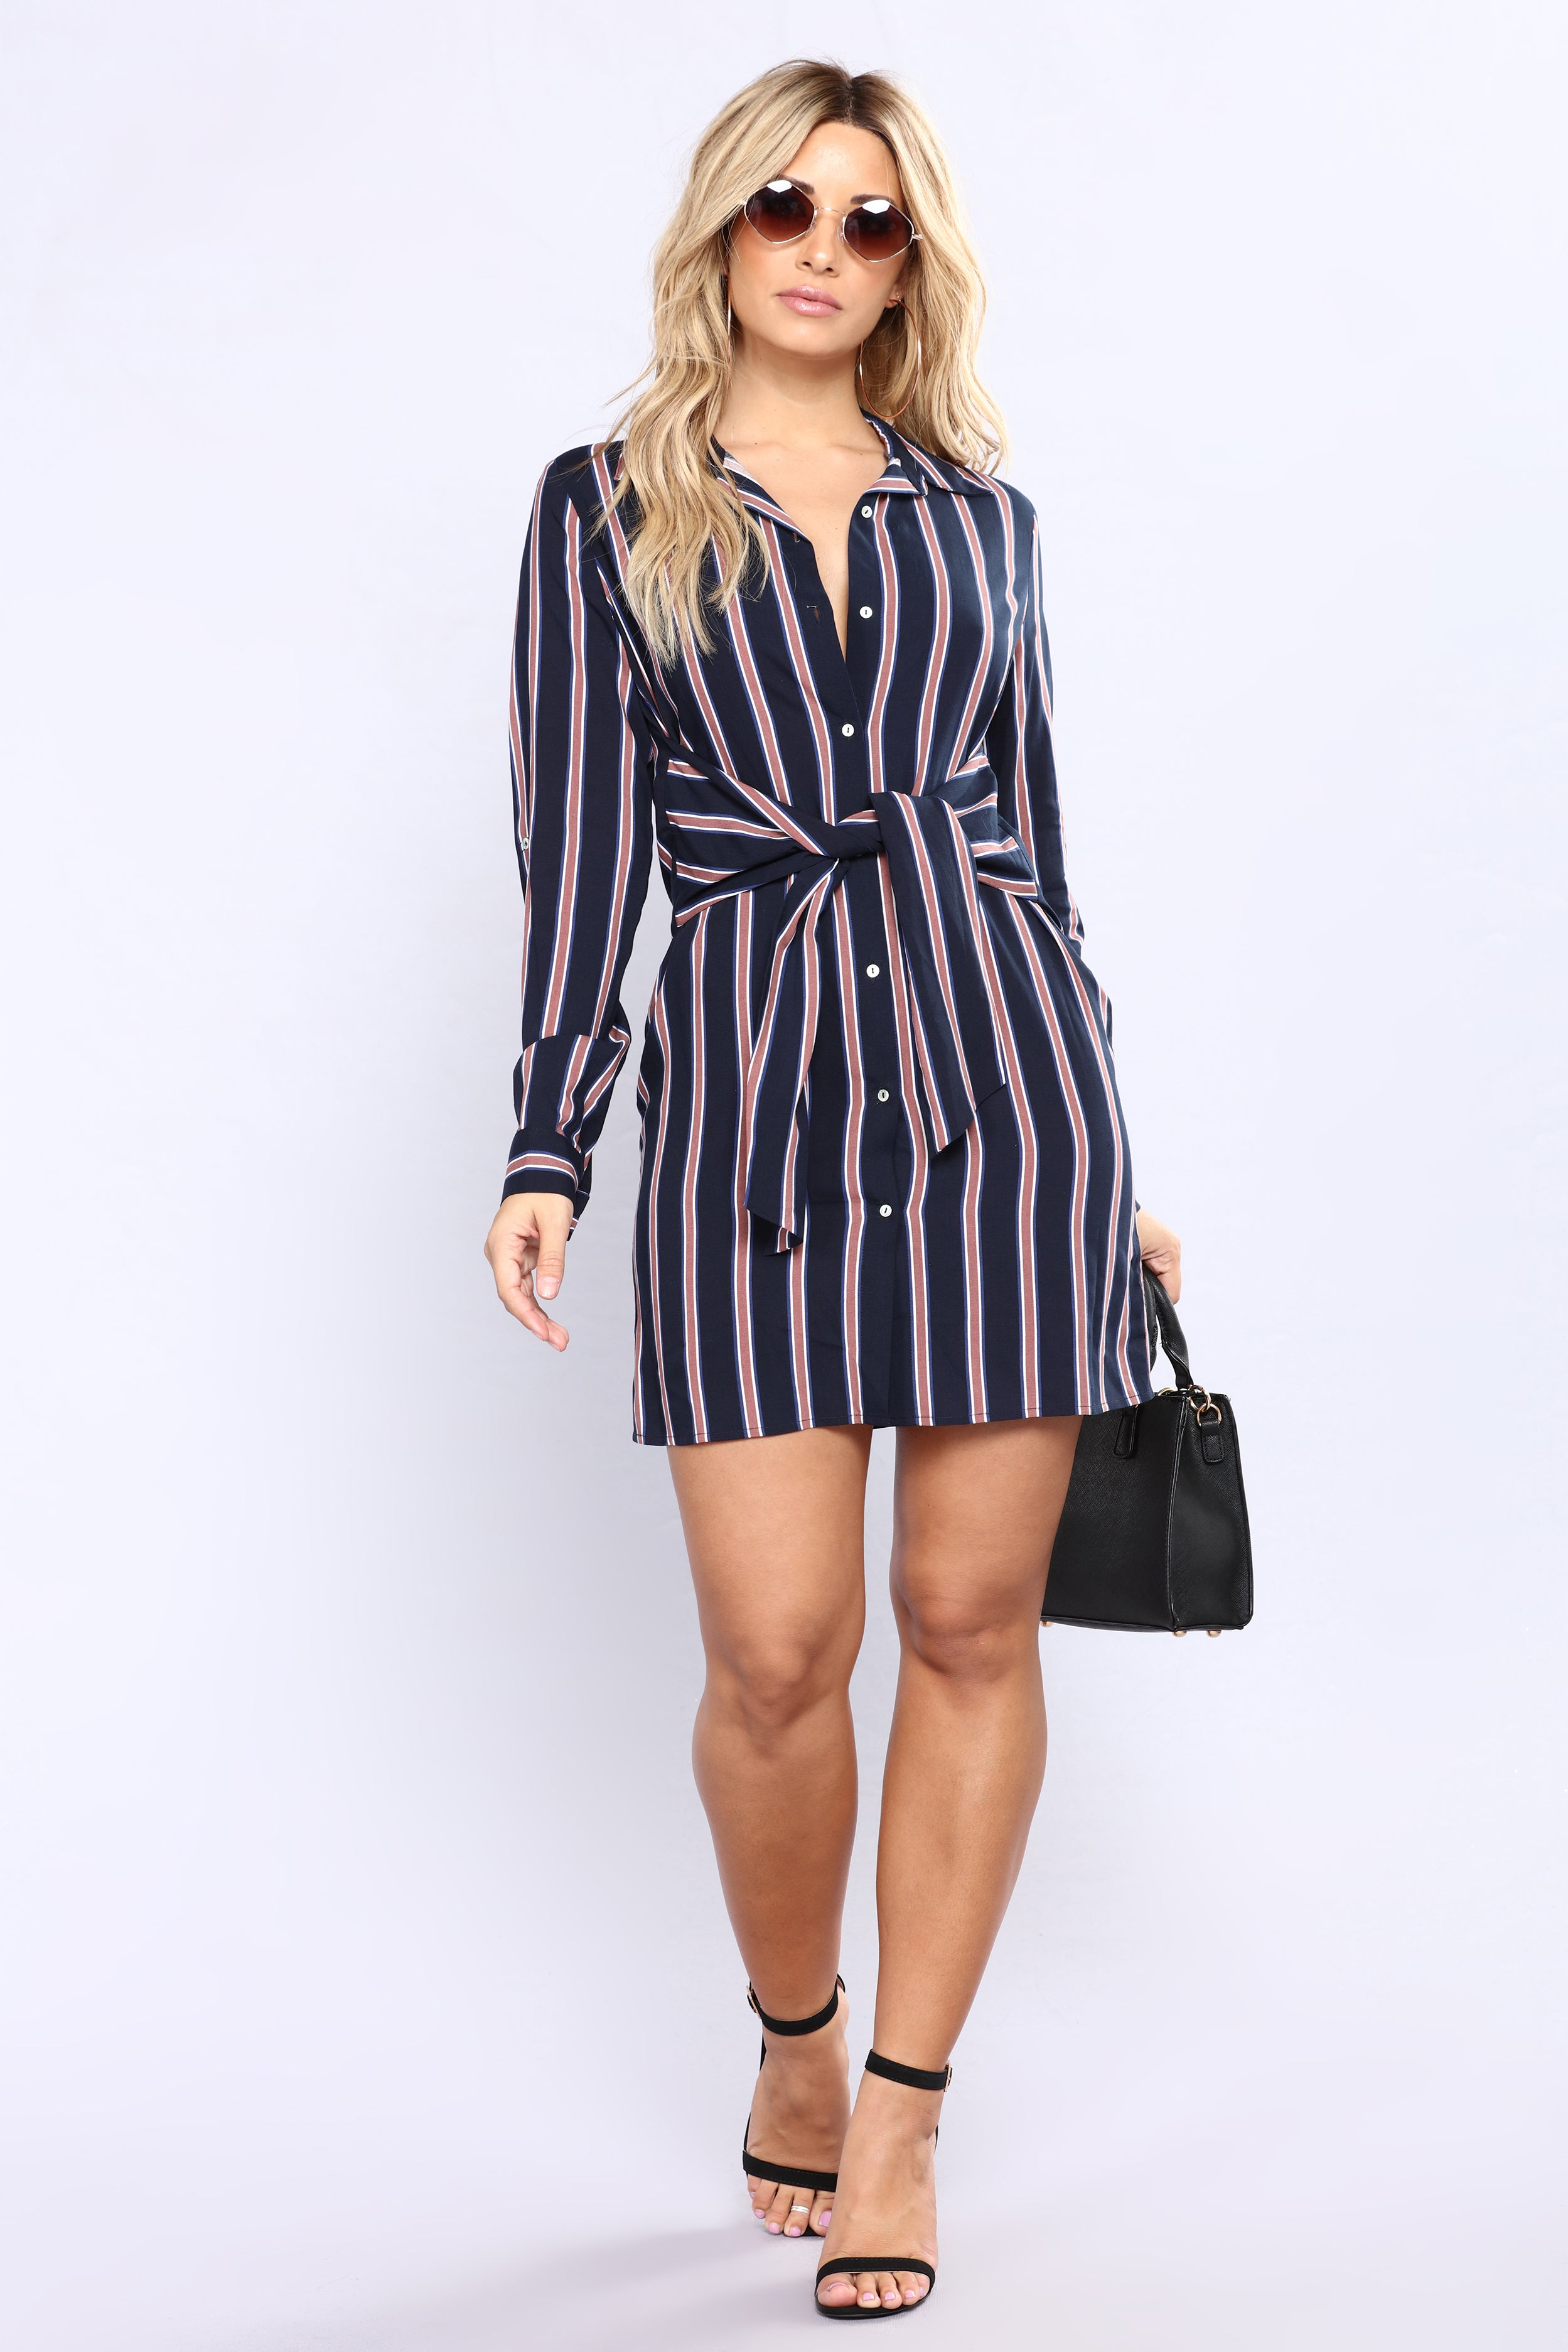 FREE SHIPPING on orders over $ FREE RETURNS in store. This striped shirt dress is crafted from soft linen, and pairs perfectly with sandals or espadrilles. $